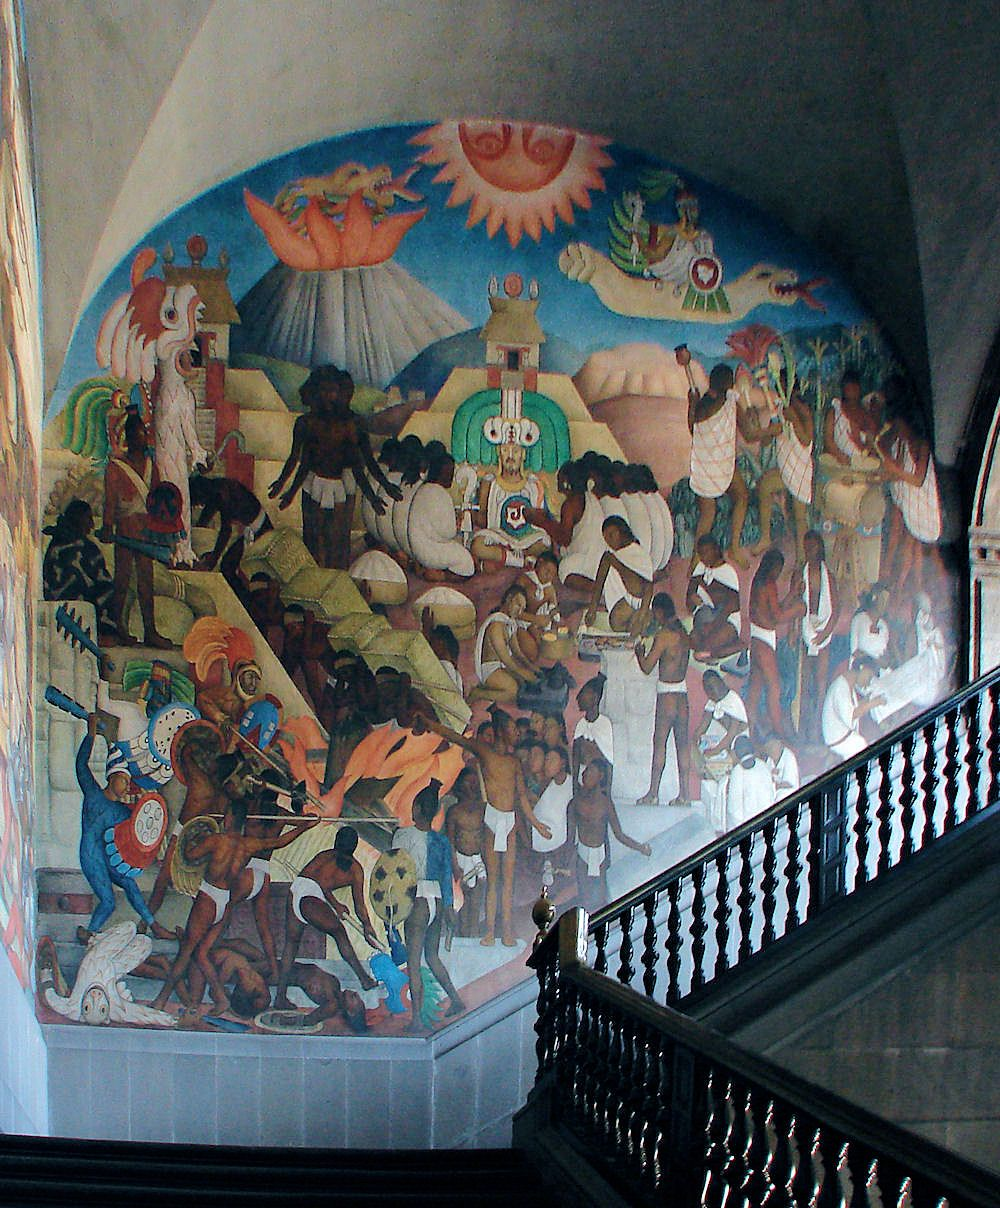 mural 1929 1930 by diego rivera the legend of